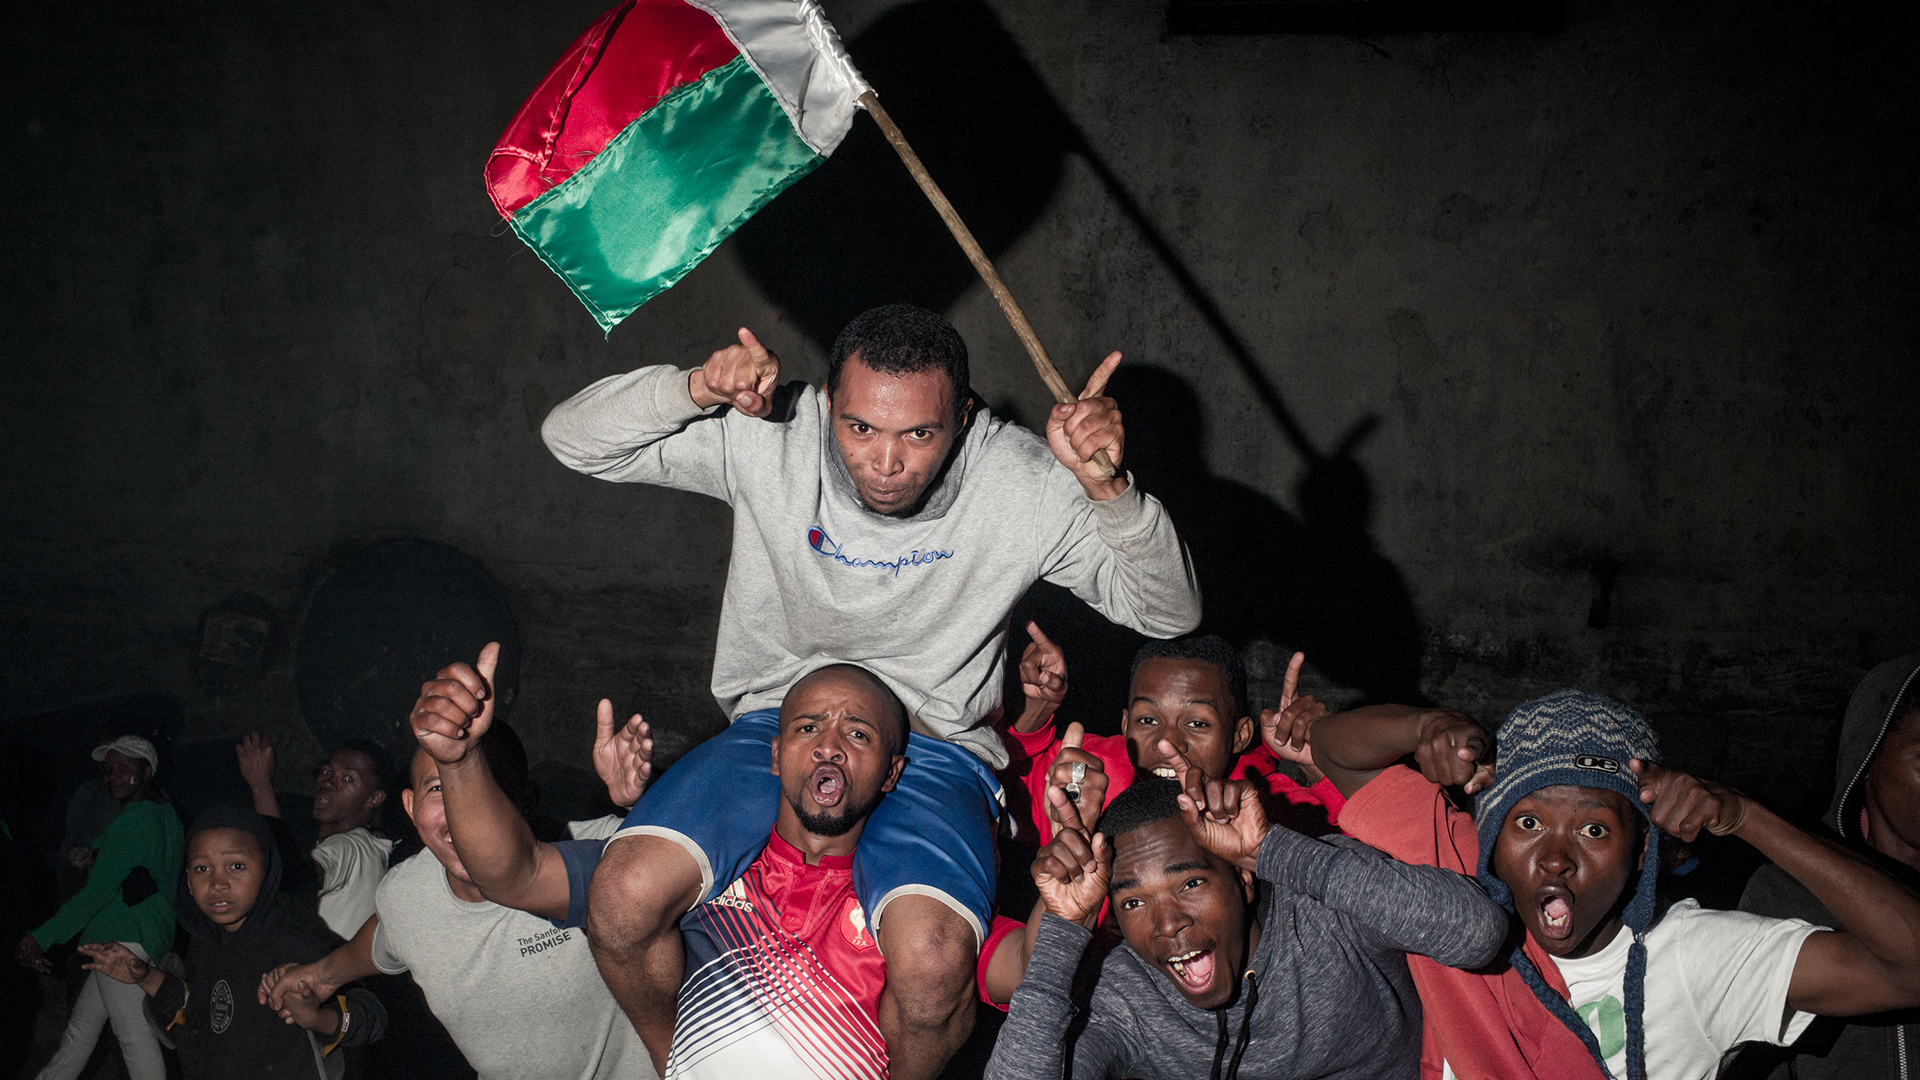 Madagascar fans celebrate AFCON